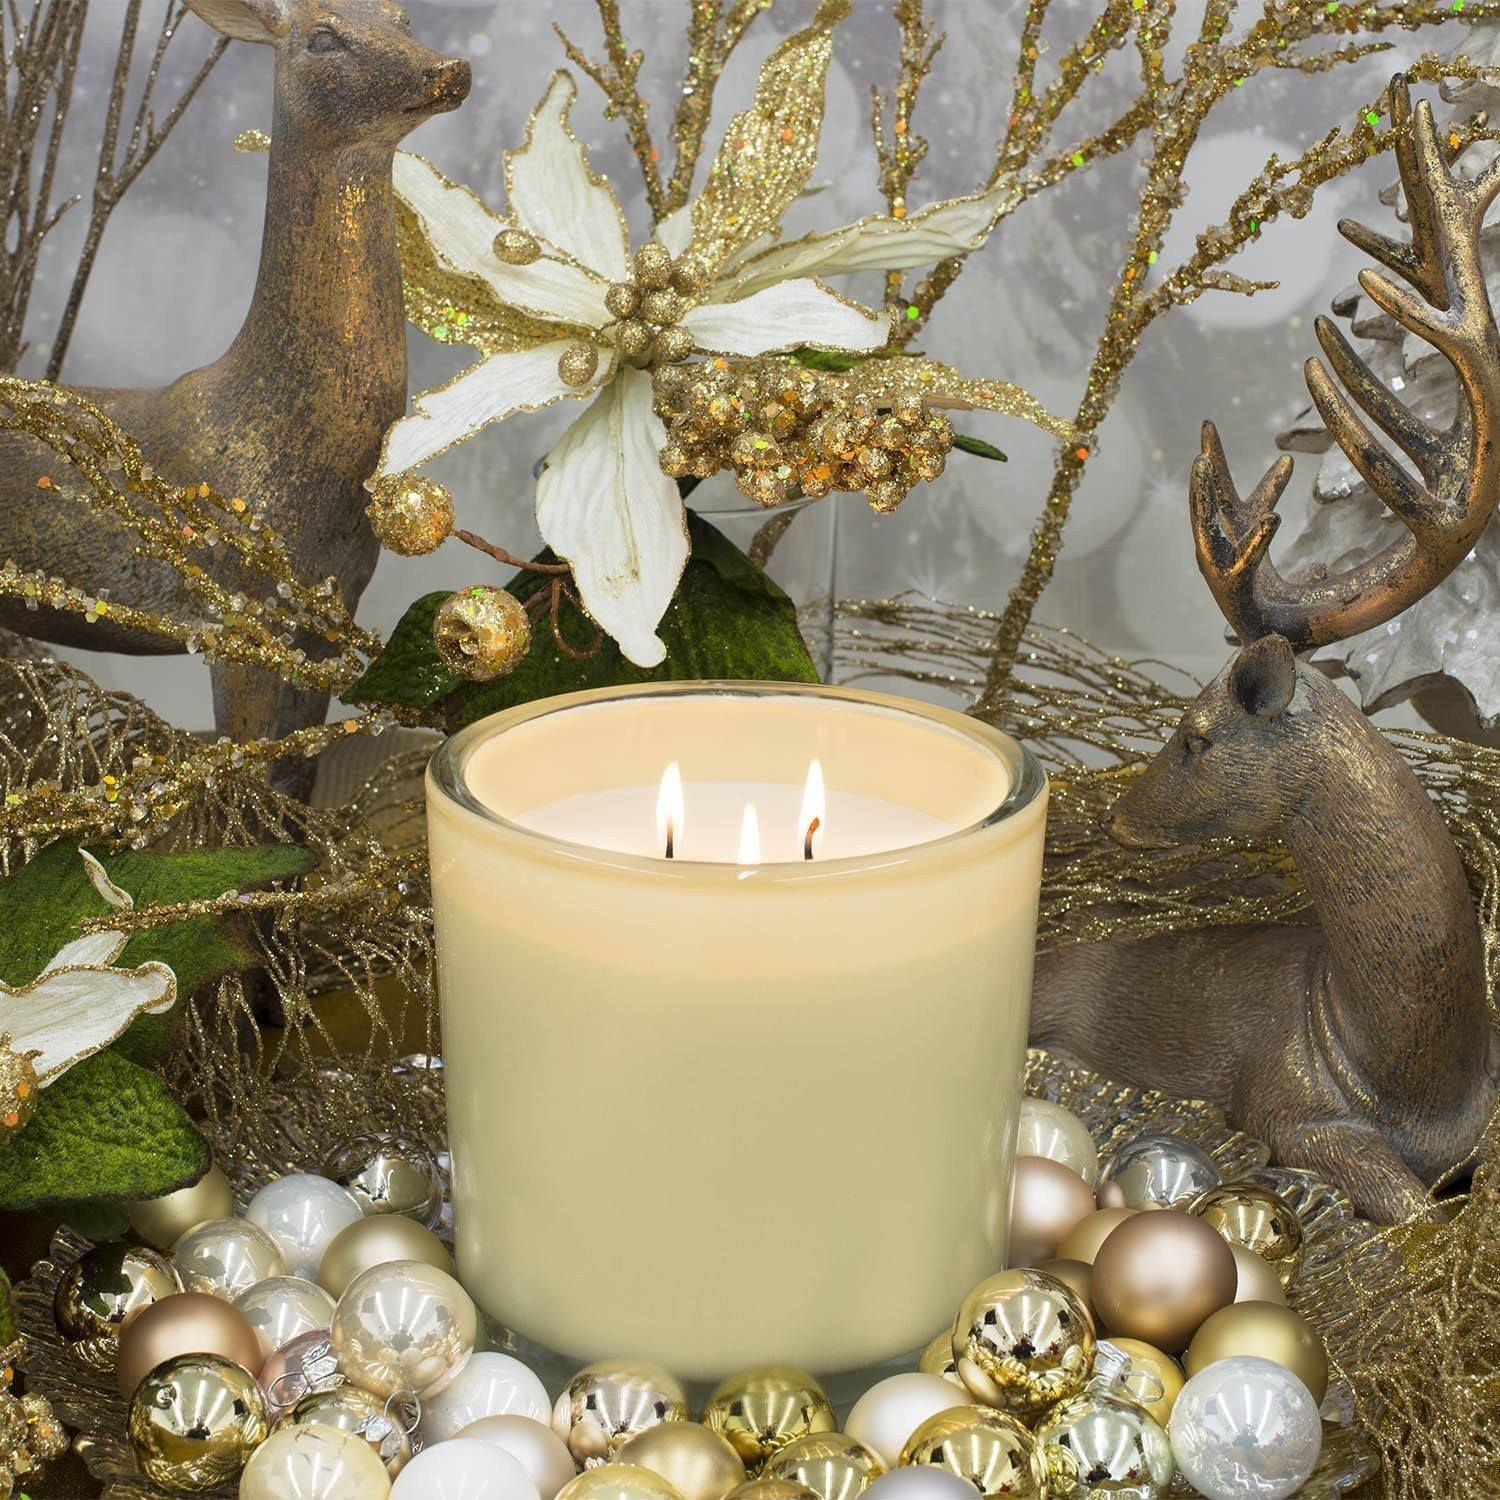 Neroli Honey Luxury 32oz White Glass Tumbler Candle - Candlemart.com